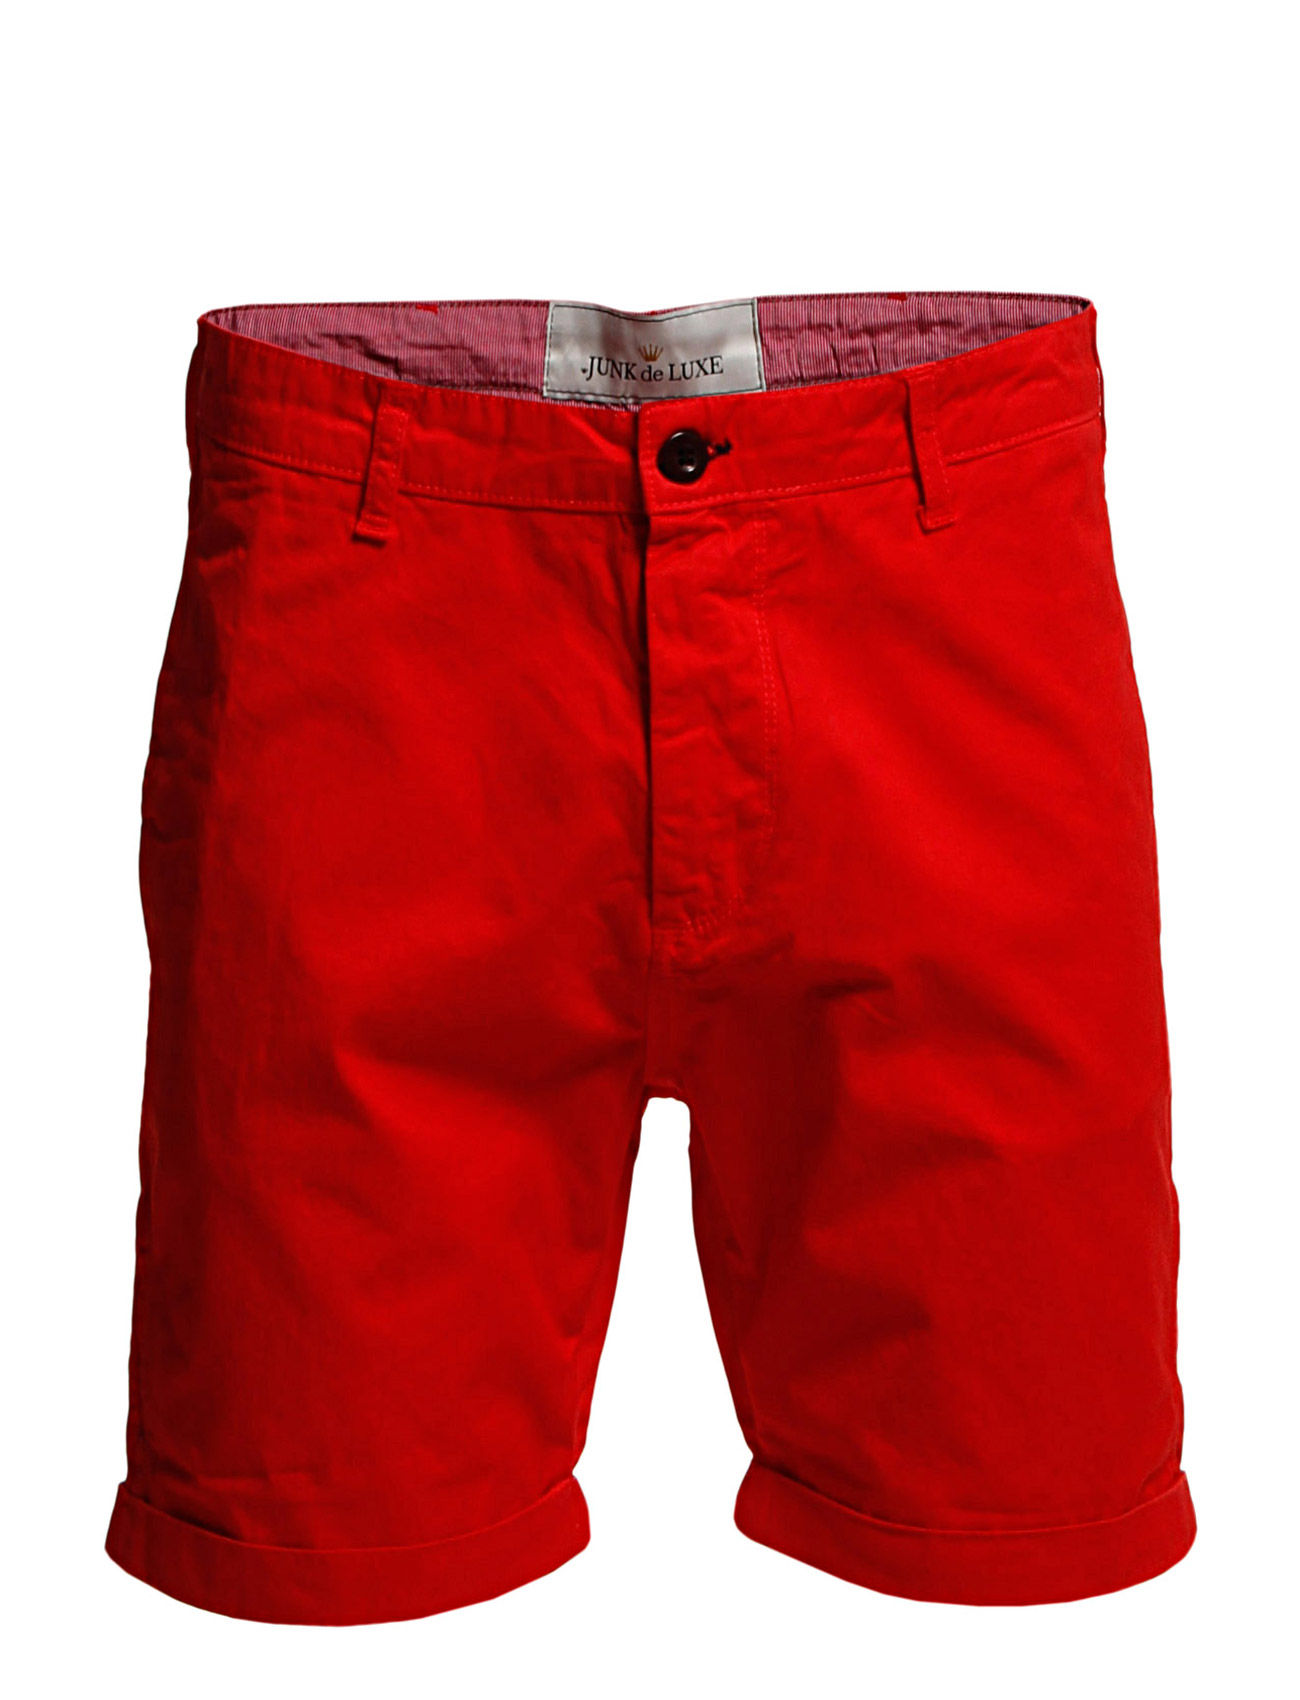 JUNK de LUXE Josh Shorts Air